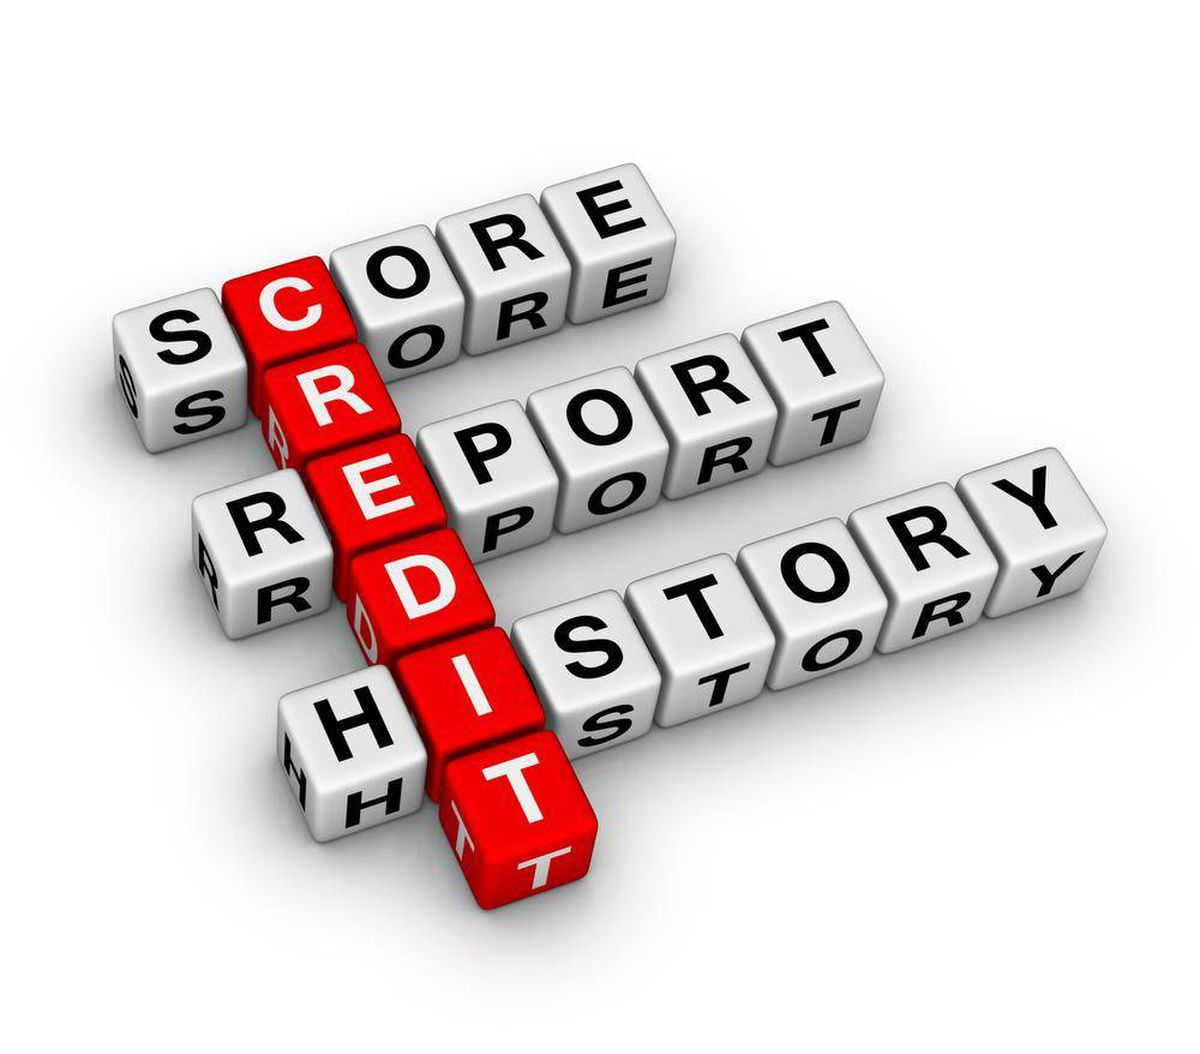 To get a mortgage, you'll need to have a stellar credit score - The